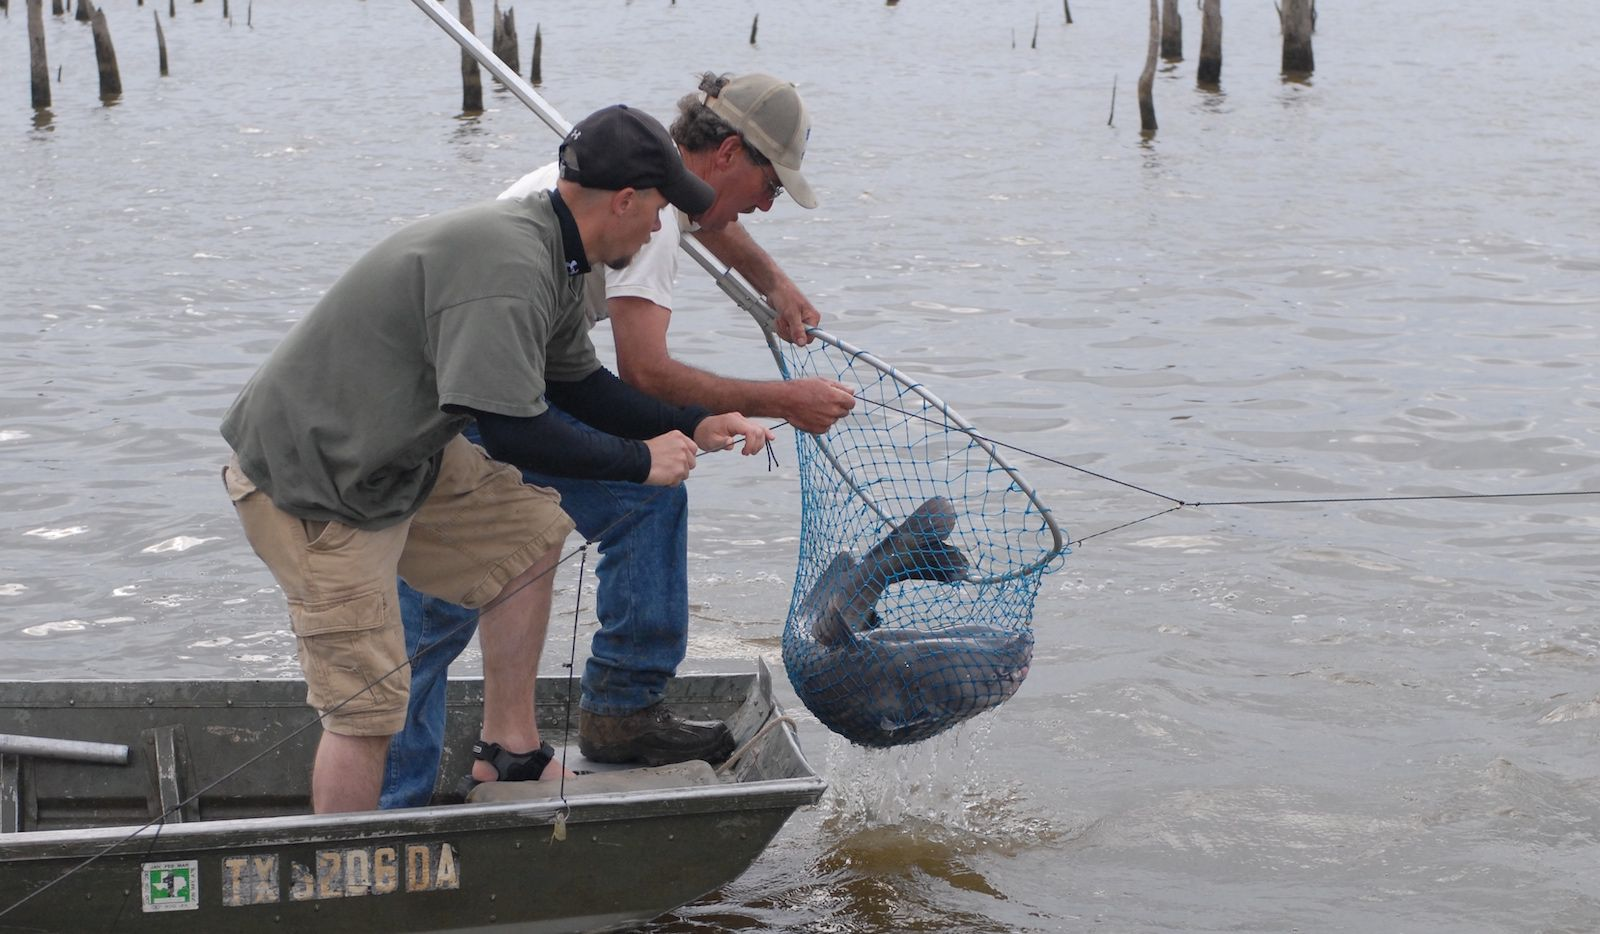 A 25-fish daily limit, with no minimum length, that would allow anglers to take no more than five fish 30 inches or longer is one of three special limits under consideration. TPWD says the limit would be applicable for large reservoirs such as Sam Rayburn and Livingston, where recruitment is high, growth is good and anglers primarily want to harvest catfish. Lake Tawakoni and interjurisdictional lakes including Toledo Bend, Texoma and Caddo would not be impacted by the new regs.